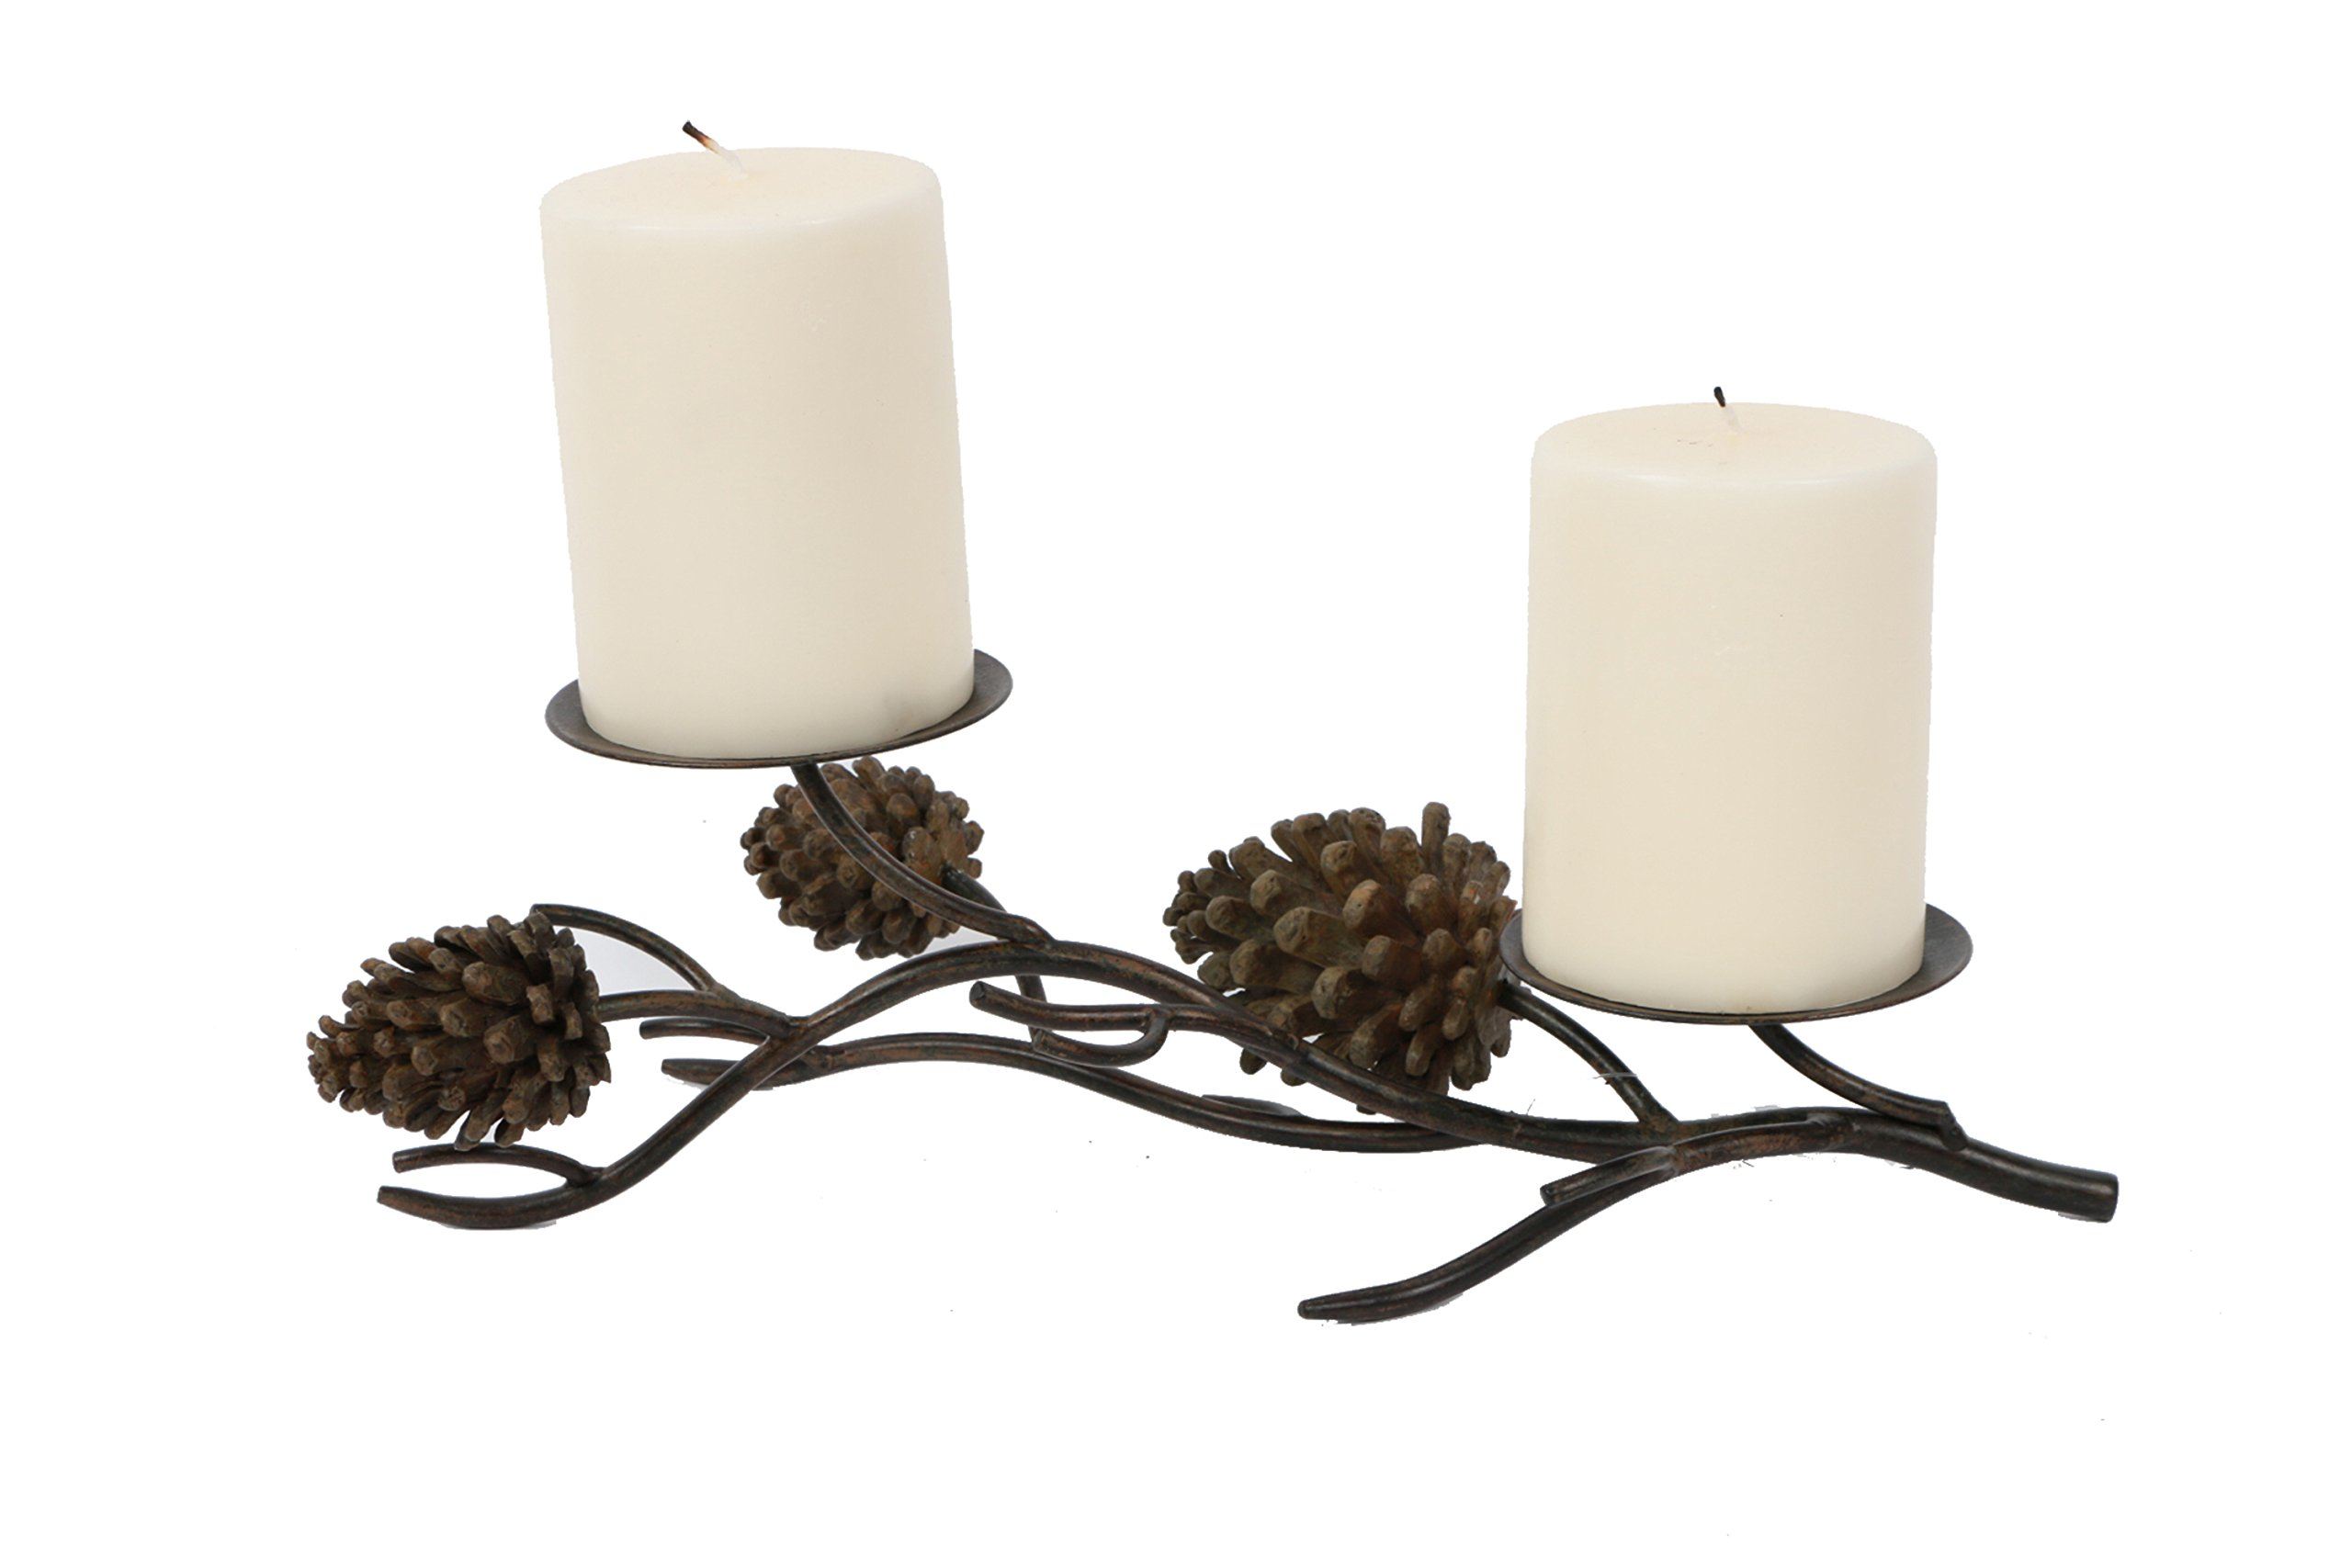 DEI Pine Cone Table Pillar, 2 by 13.5-Inch - Woodland river collection Easy to use and install Pillar candle not included - living-room-decor, living-room, candles - 71wN1GVgMsL -